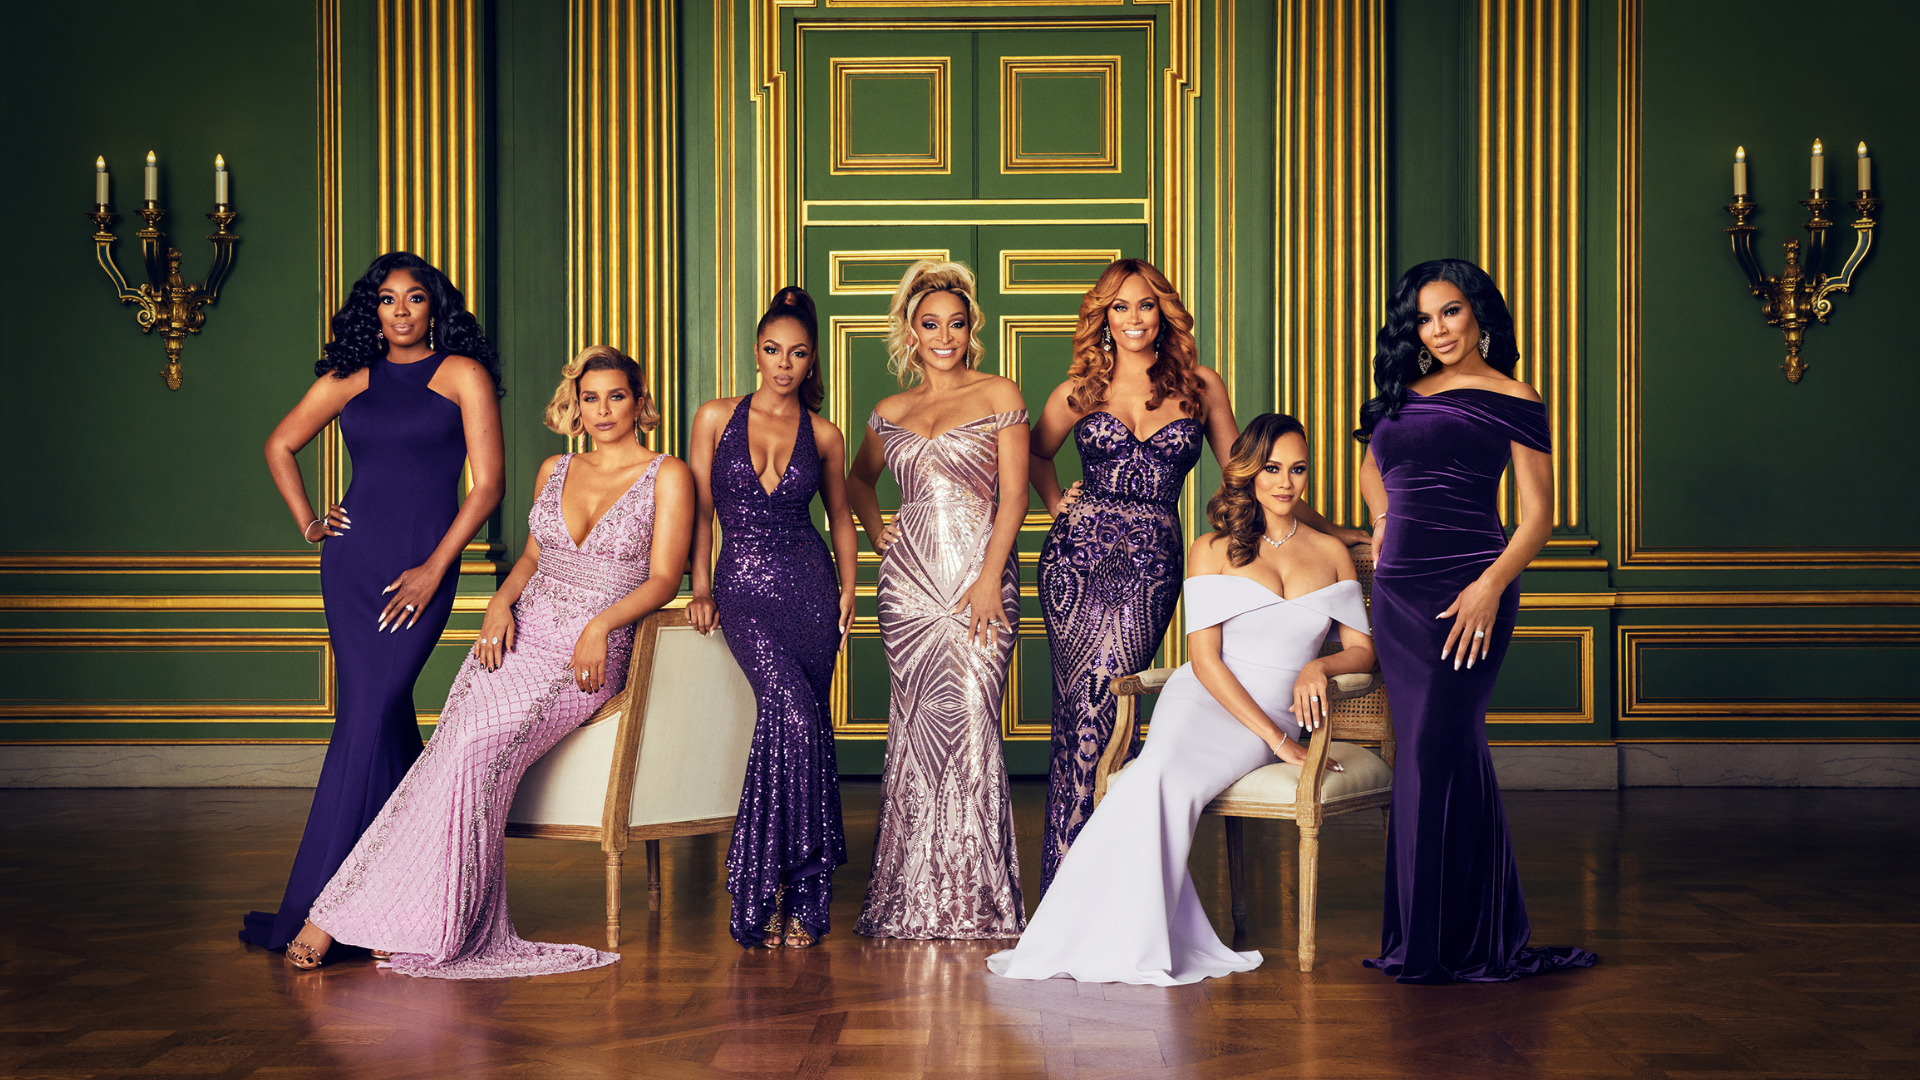 The Real Housewives of Potomac - New Season July 11. Go to a video page.